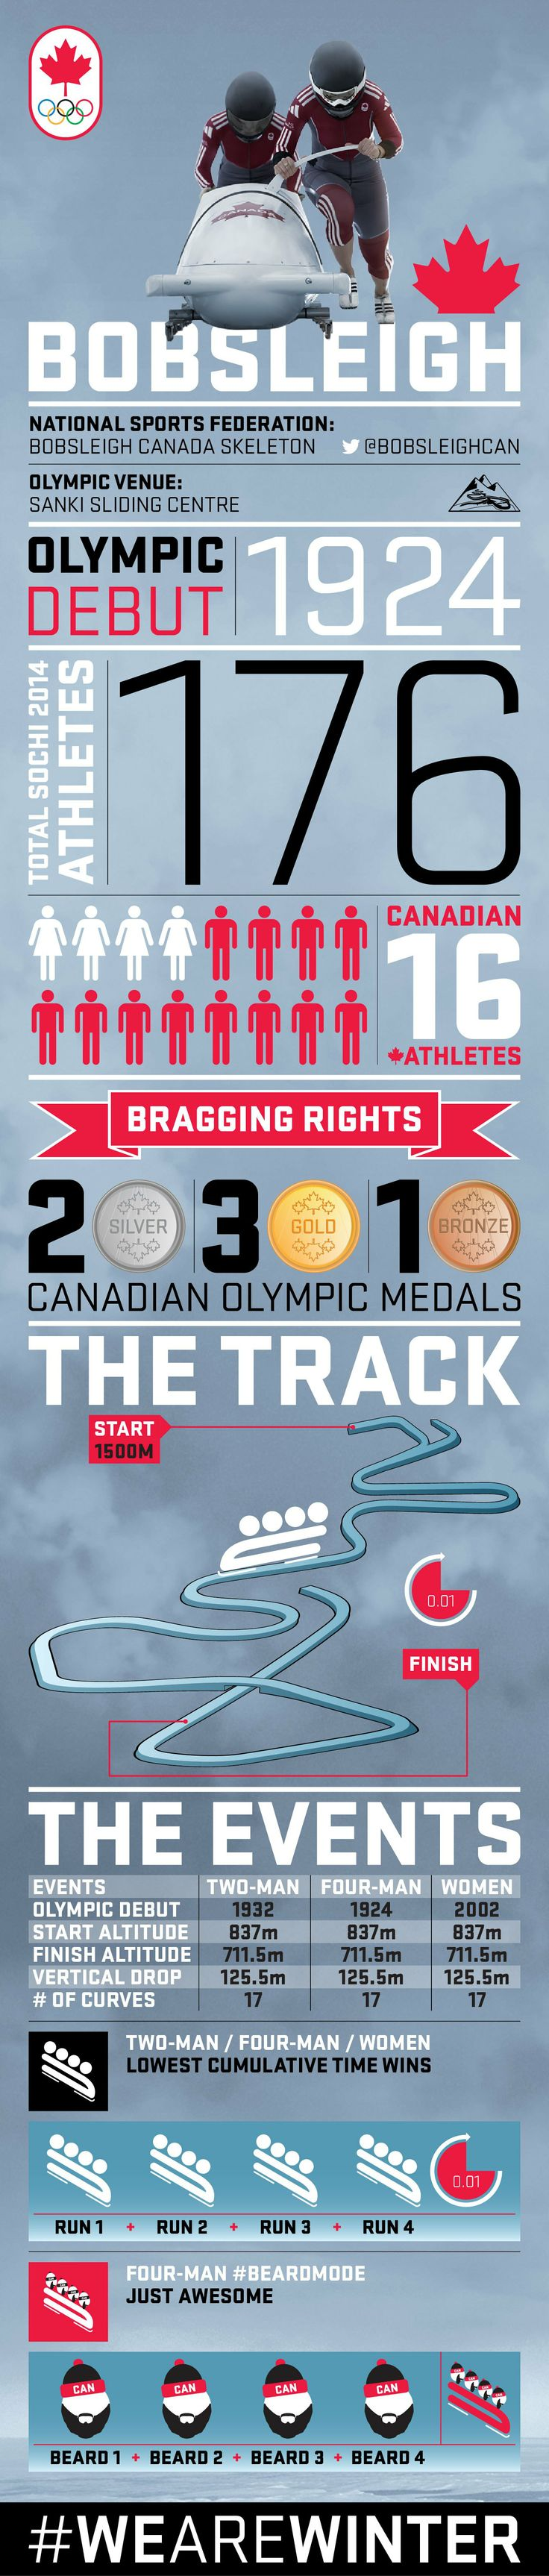 Bobsleigh infographic from olympic.ca #TeamCanada #Canada #WeAreWinter #Bobsleigh